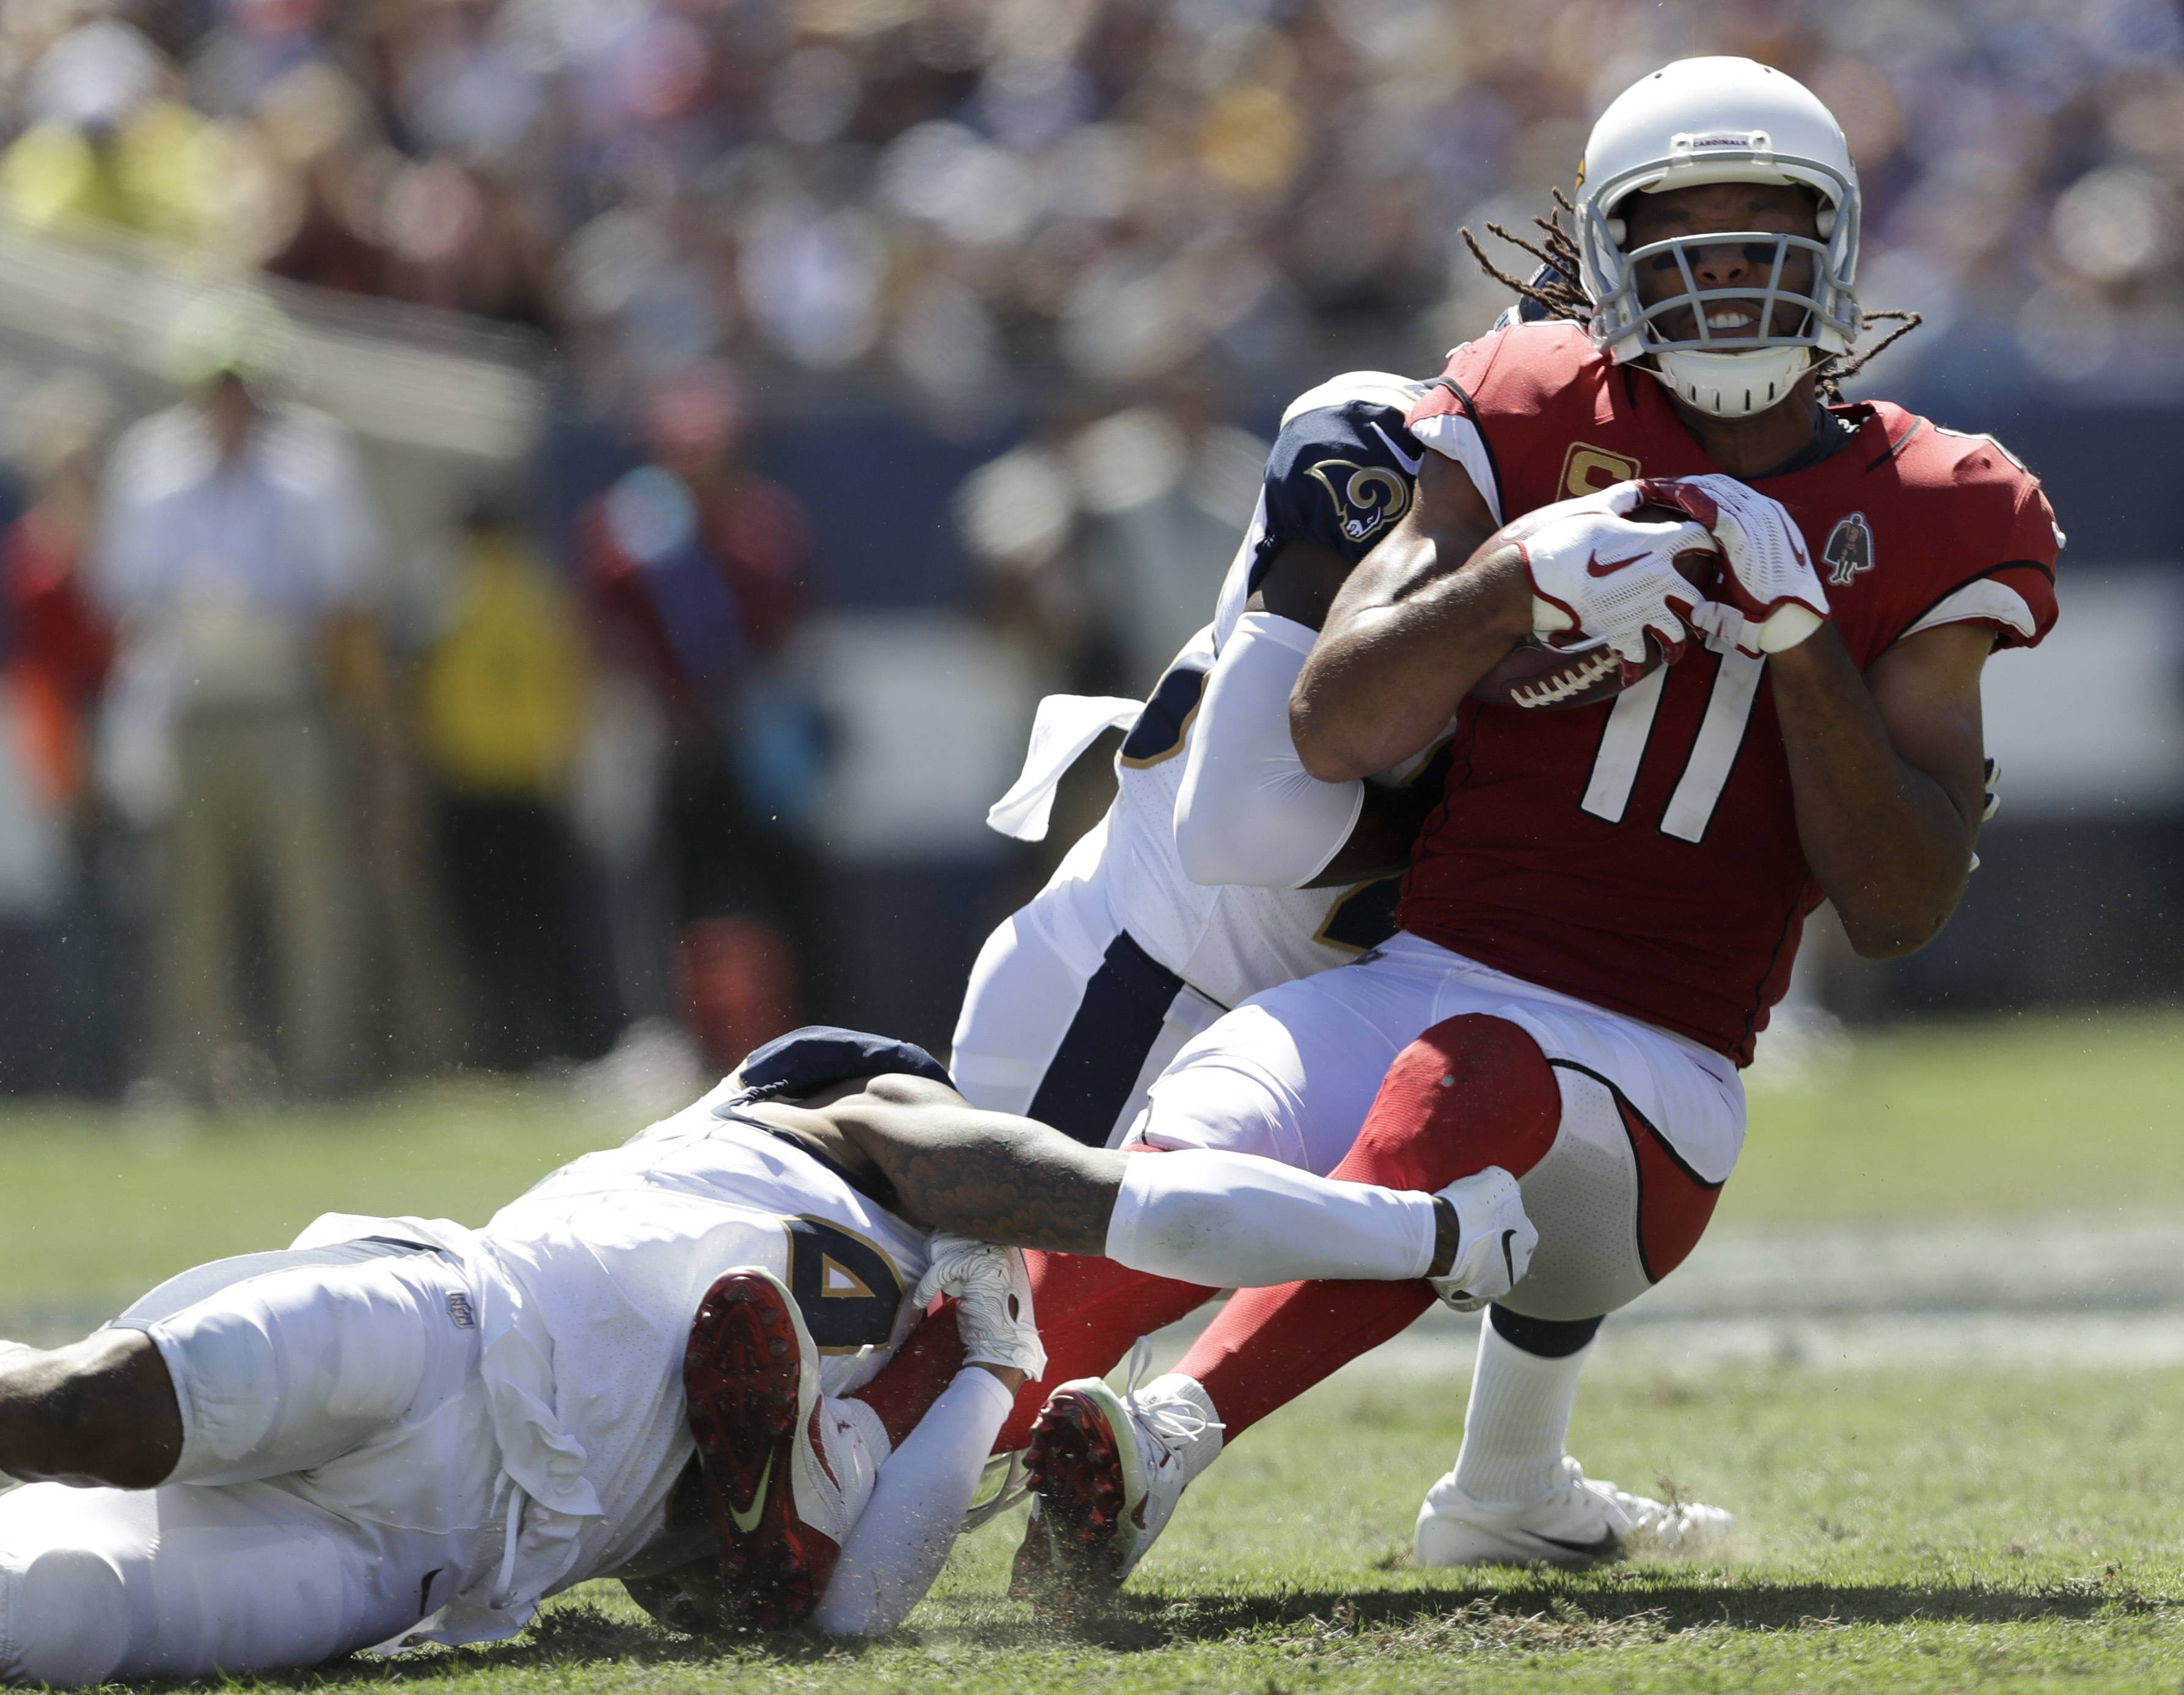 Arizona Cardinals wide receiver Larry Fitzgerald, right, is tackled by Los Angeles Rams defensive back John Johnson, bottom, and defensive back Lamarcus Joyner during the first half of an NFL football game Sunday, Sept. 16, 2018, in Los Angeles. (AP Photo/Marcio Jose Sanchez)